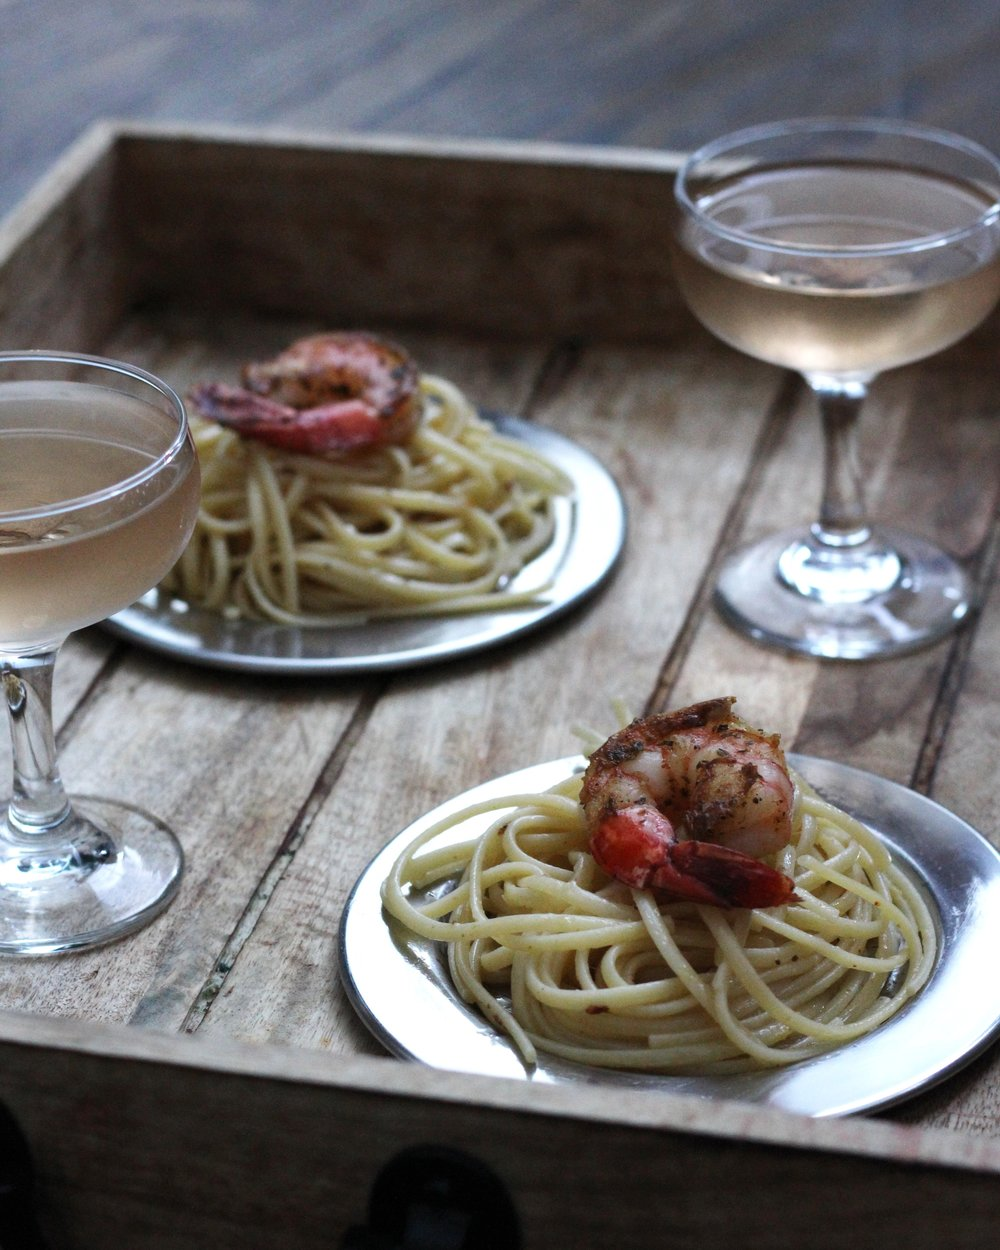 shrimp-scampi-with-old-bay-tarragon-and-rose.jpg